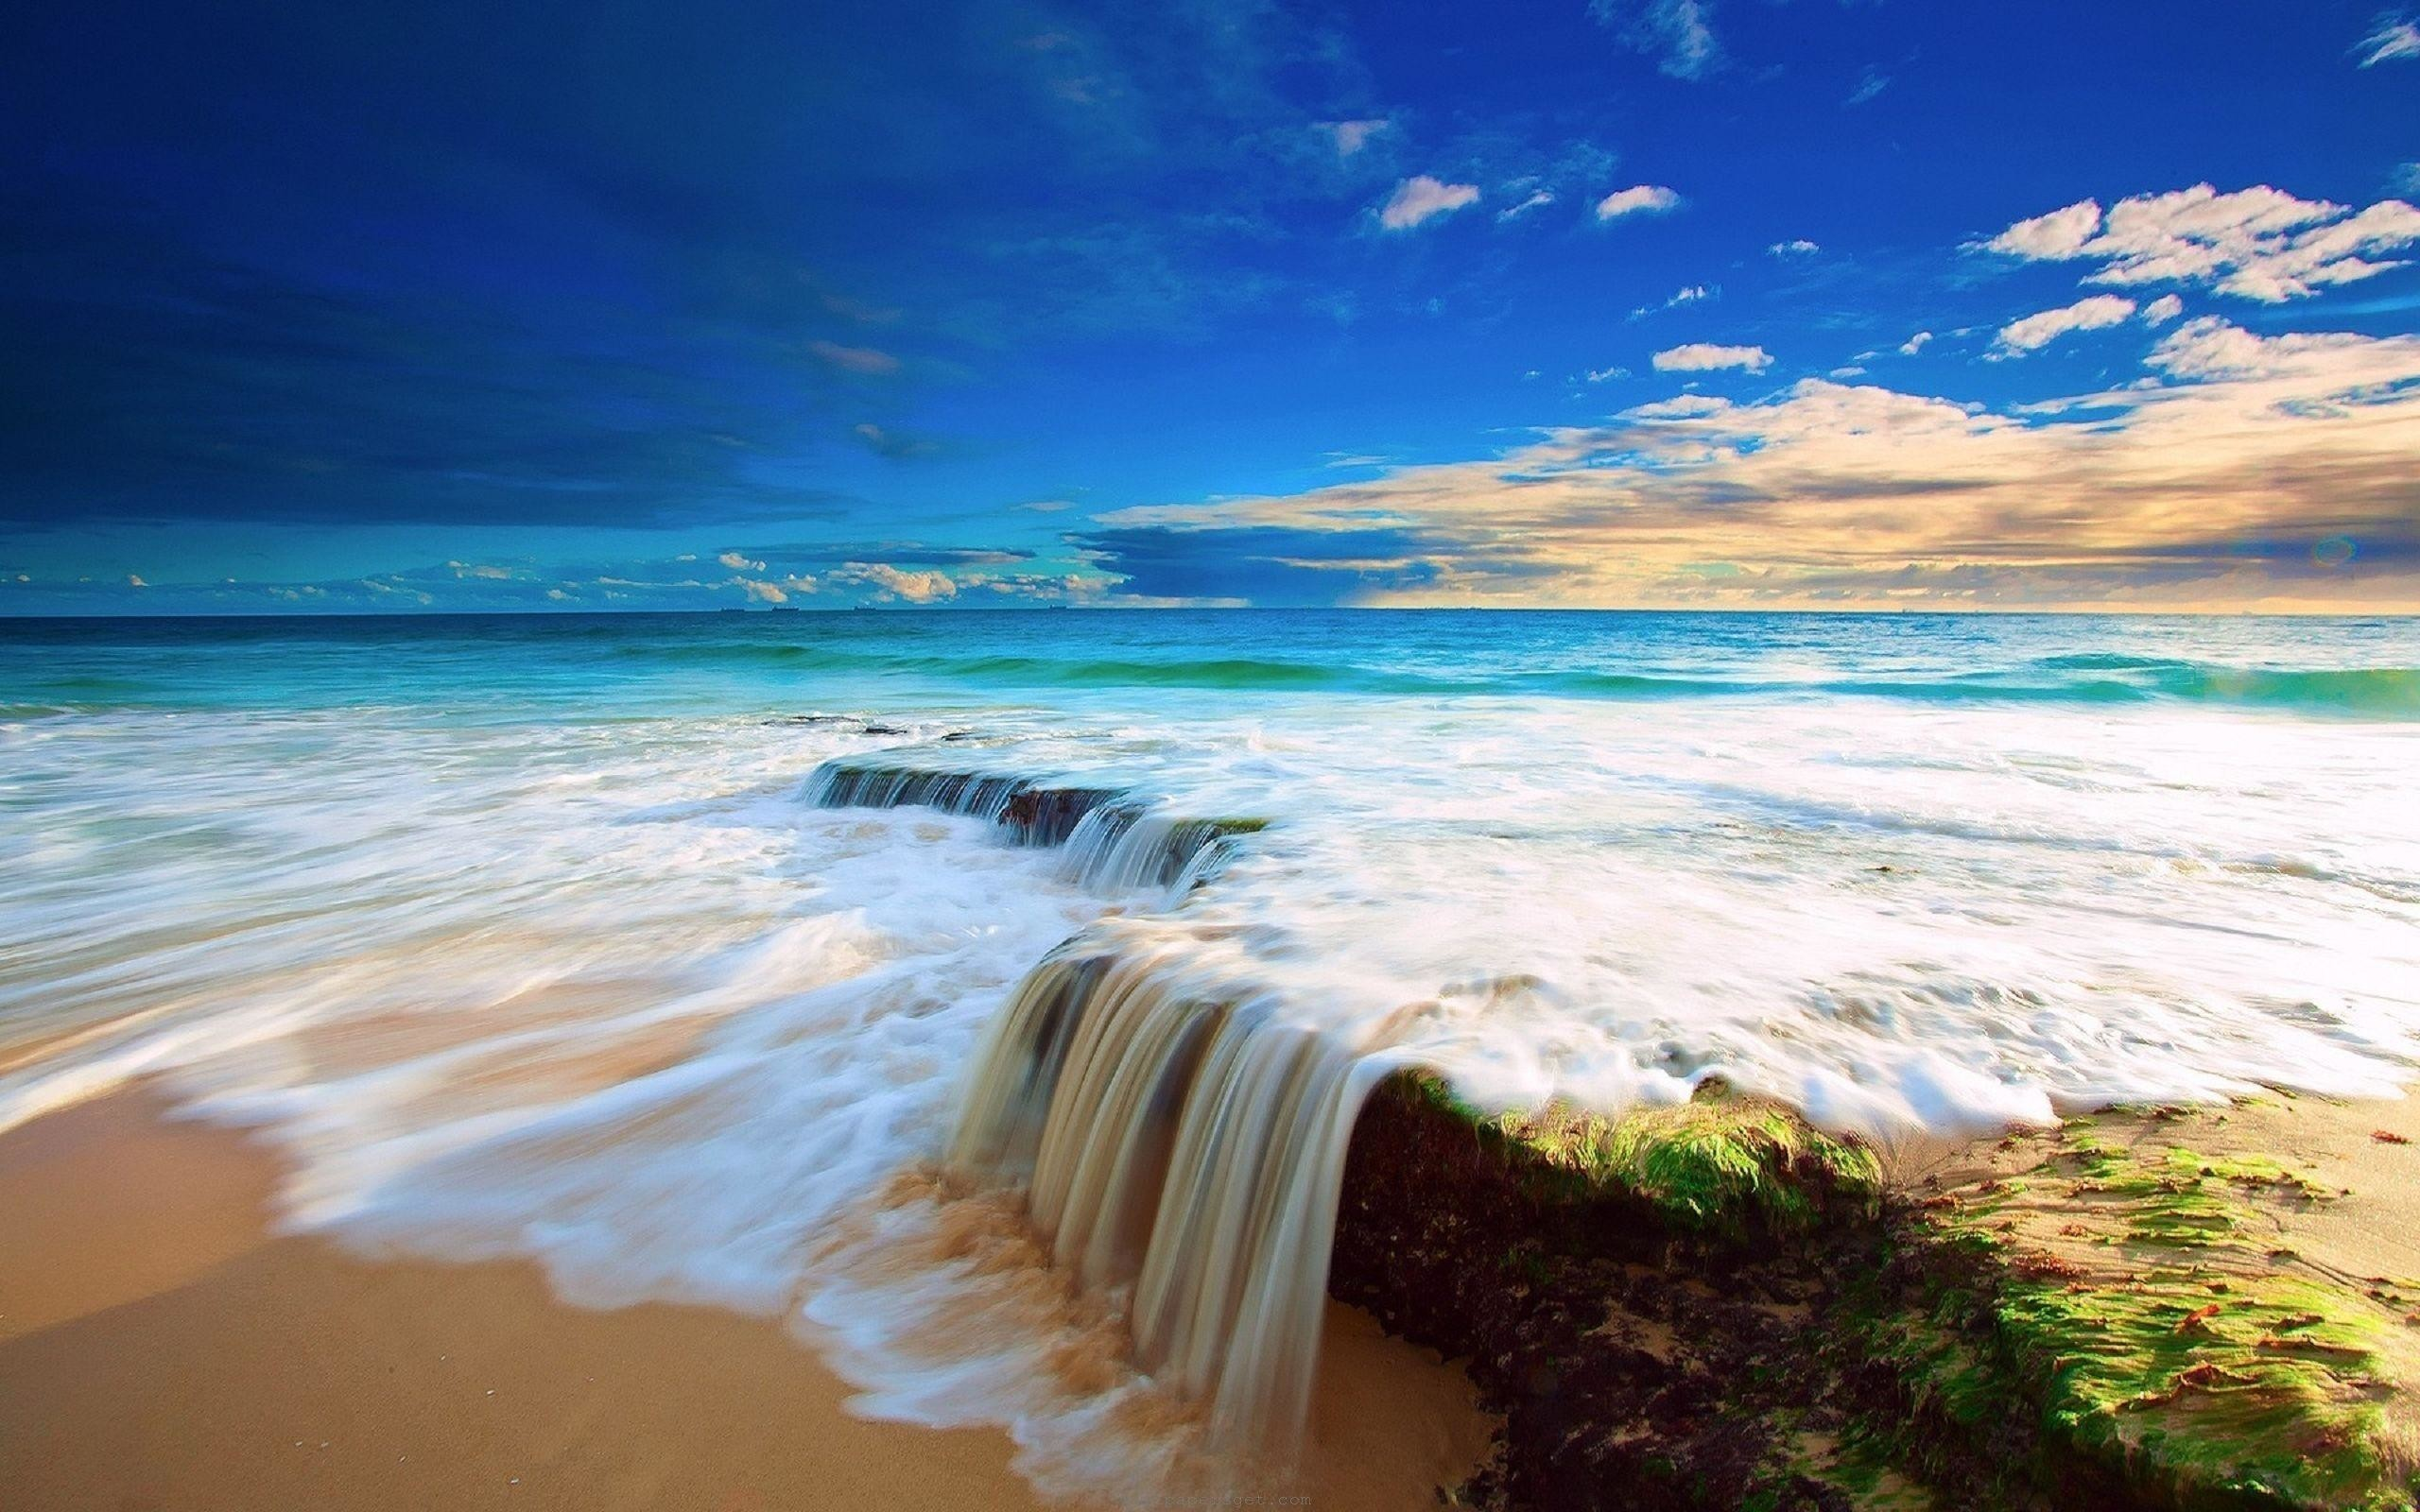 2560x1600 Beach Ocean Waves Water Favim Com HD Wallpaper | Nature Wallpapers